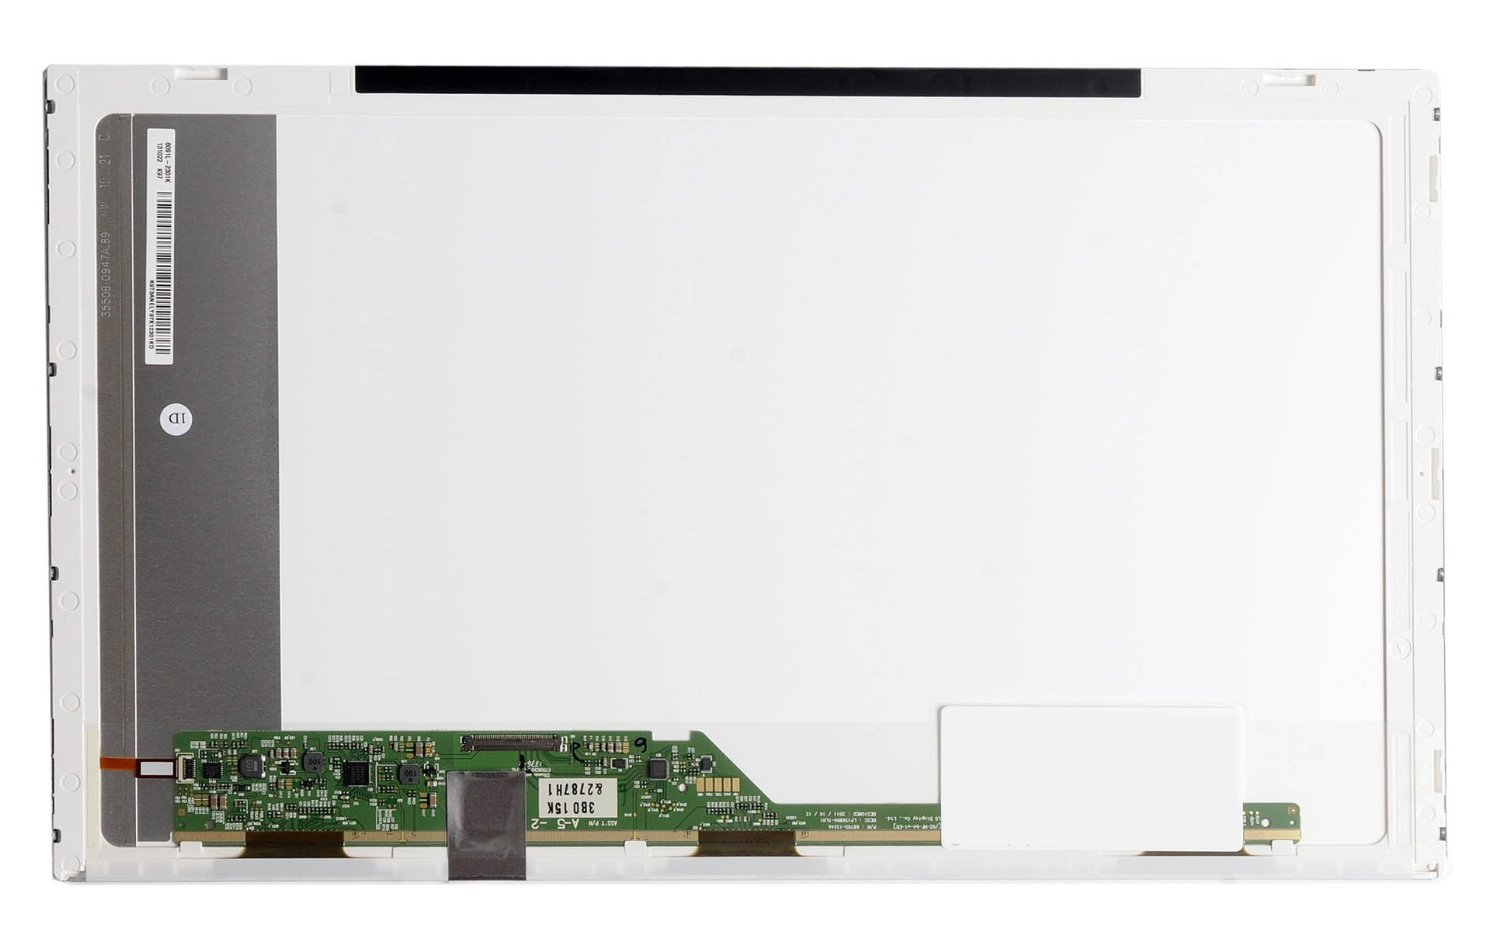 For Asus K55A / K55A-Dh71 / K55A-Si503 / K55N / K55 New 15.6 Laptop LED LCD Screen Display k55a motherboard rev 3 0 3 1 hm76 chipset for asus k55vd k55a laptop motherboard k55a mainboard k55a motherboard test 100